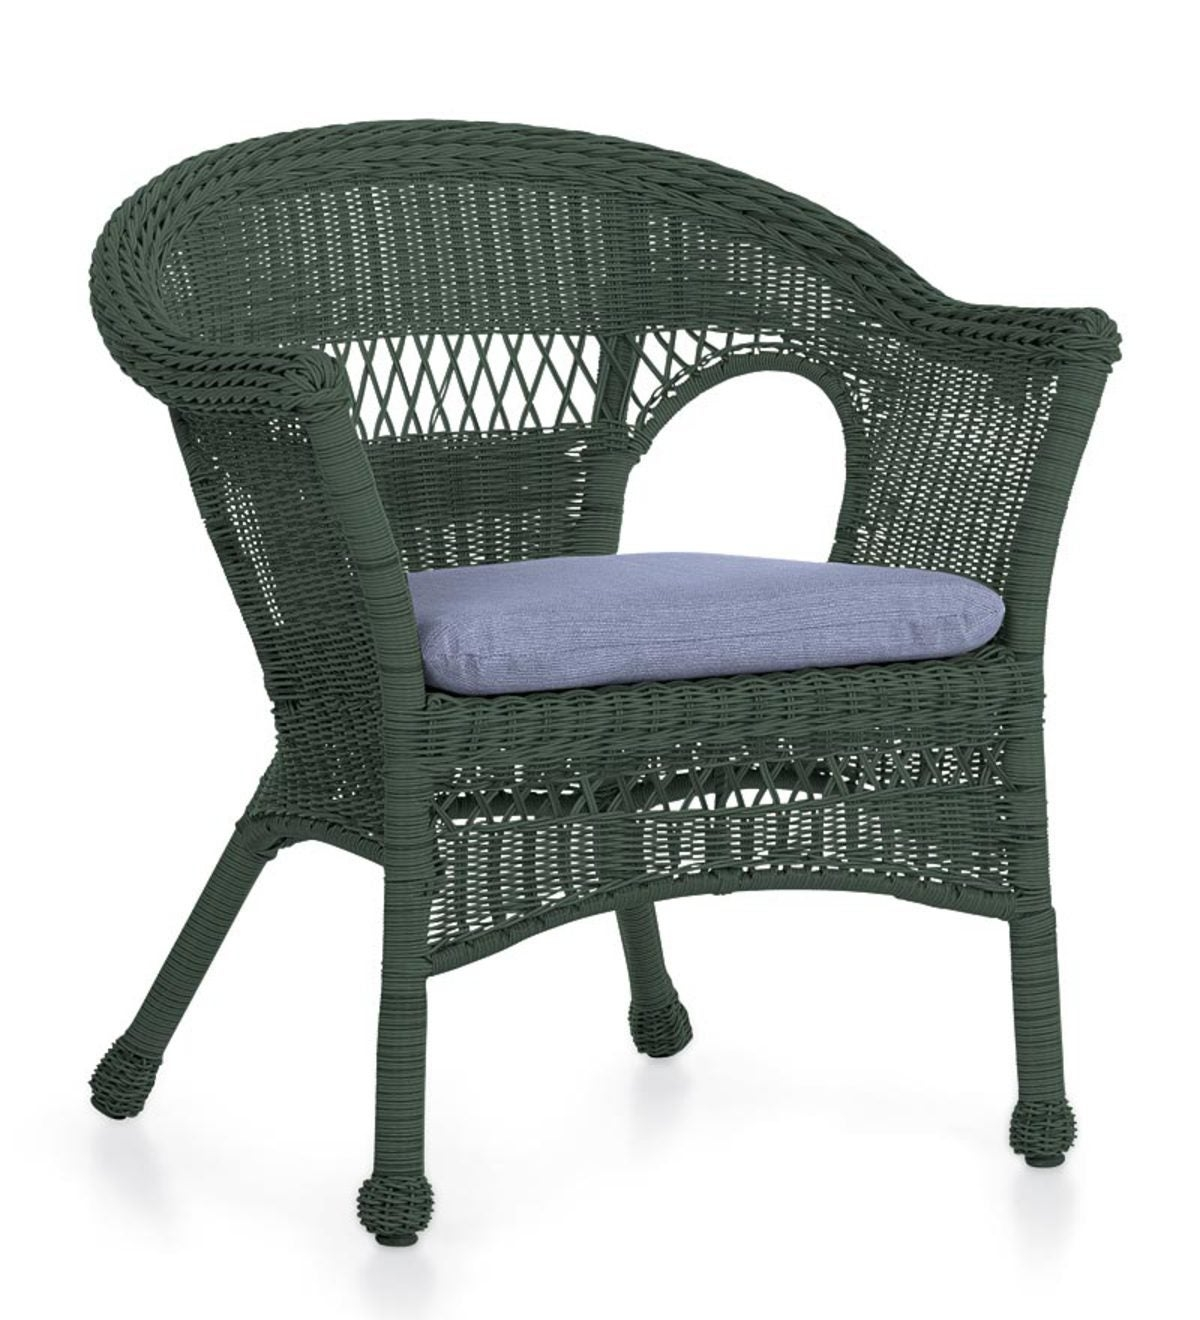 All Weather Resin Outdoor Easy Care Wicker Chair, In Green